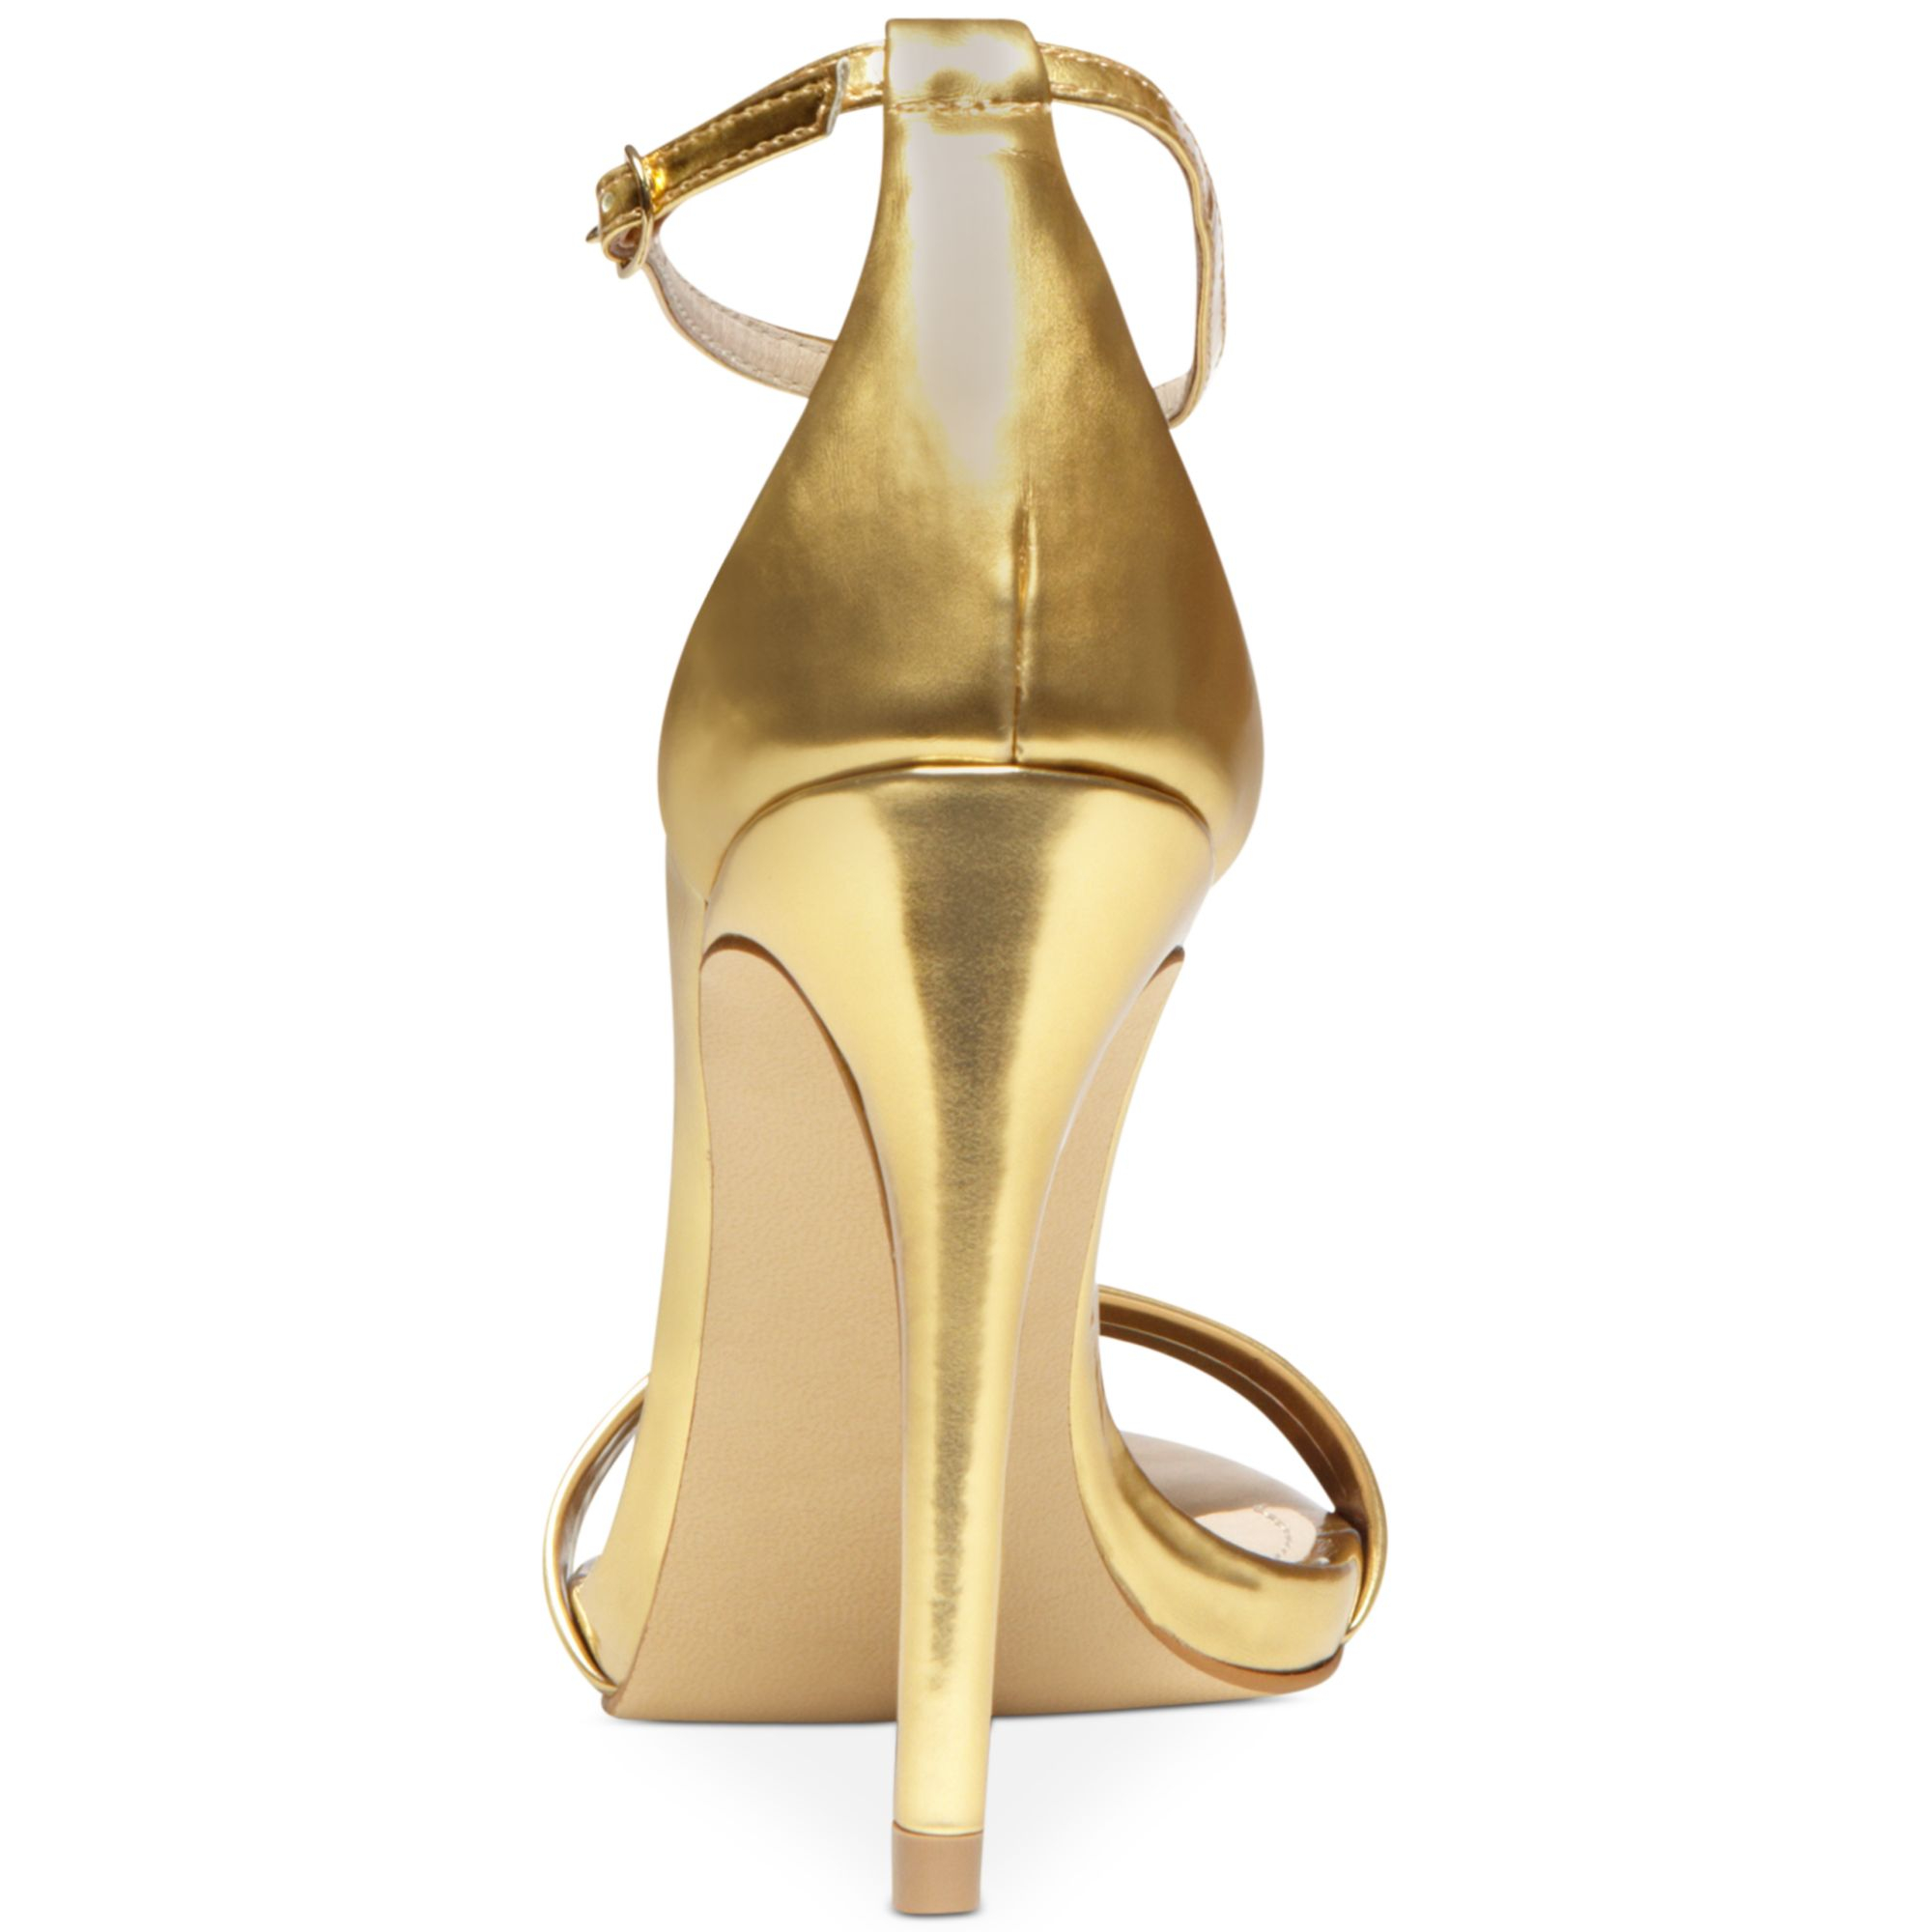 plato center single christian girls Buy your pigalle plato patent leather heels christian louboutin on vestiaire collective, the luxury consignment store online second-hand pigalle plato patent leather heels christian louboutin black in patent leather available 5487038.